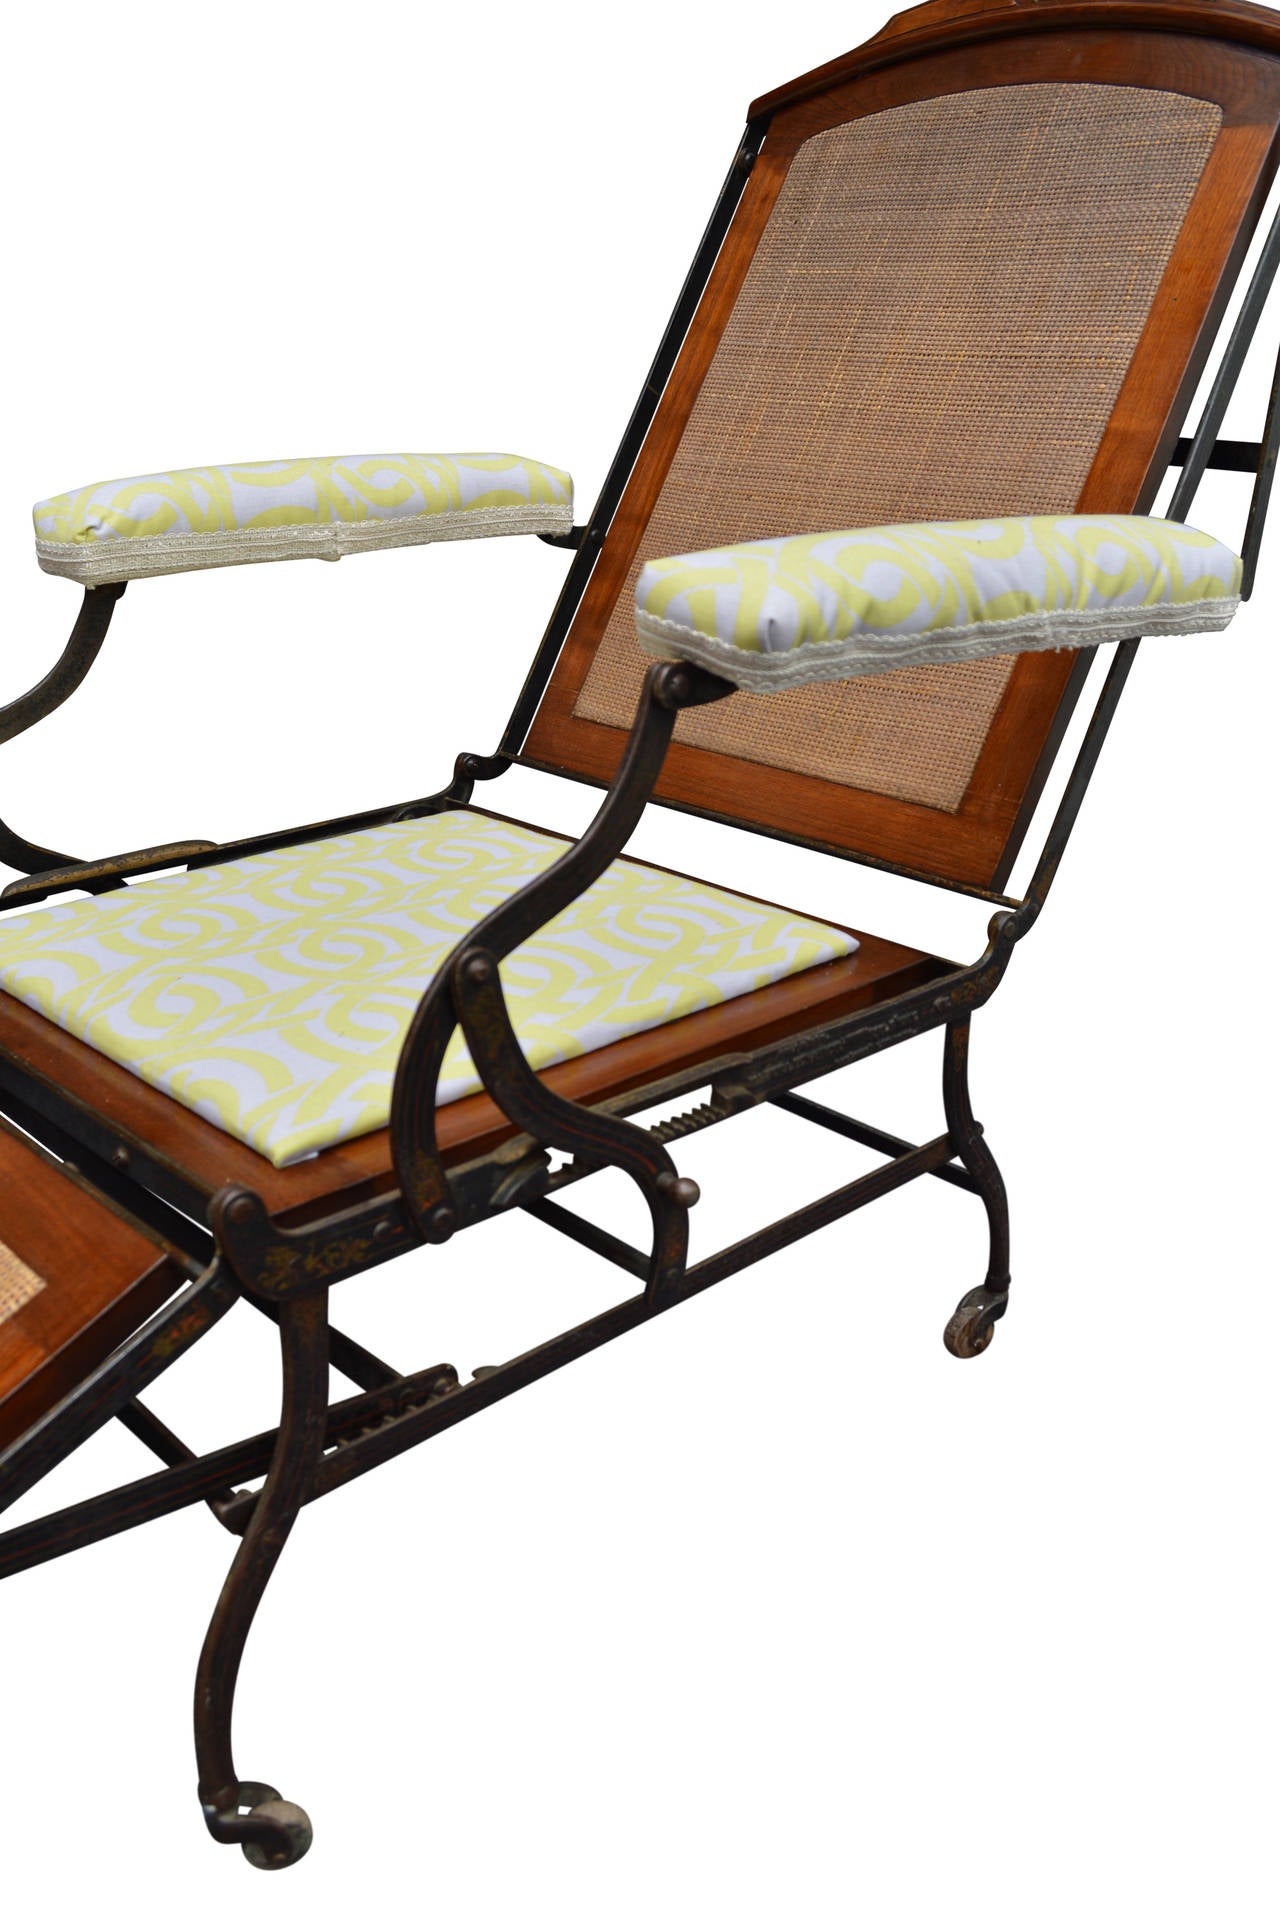 Adjustable Folding Campaign Chair For Sale at 1stdibs